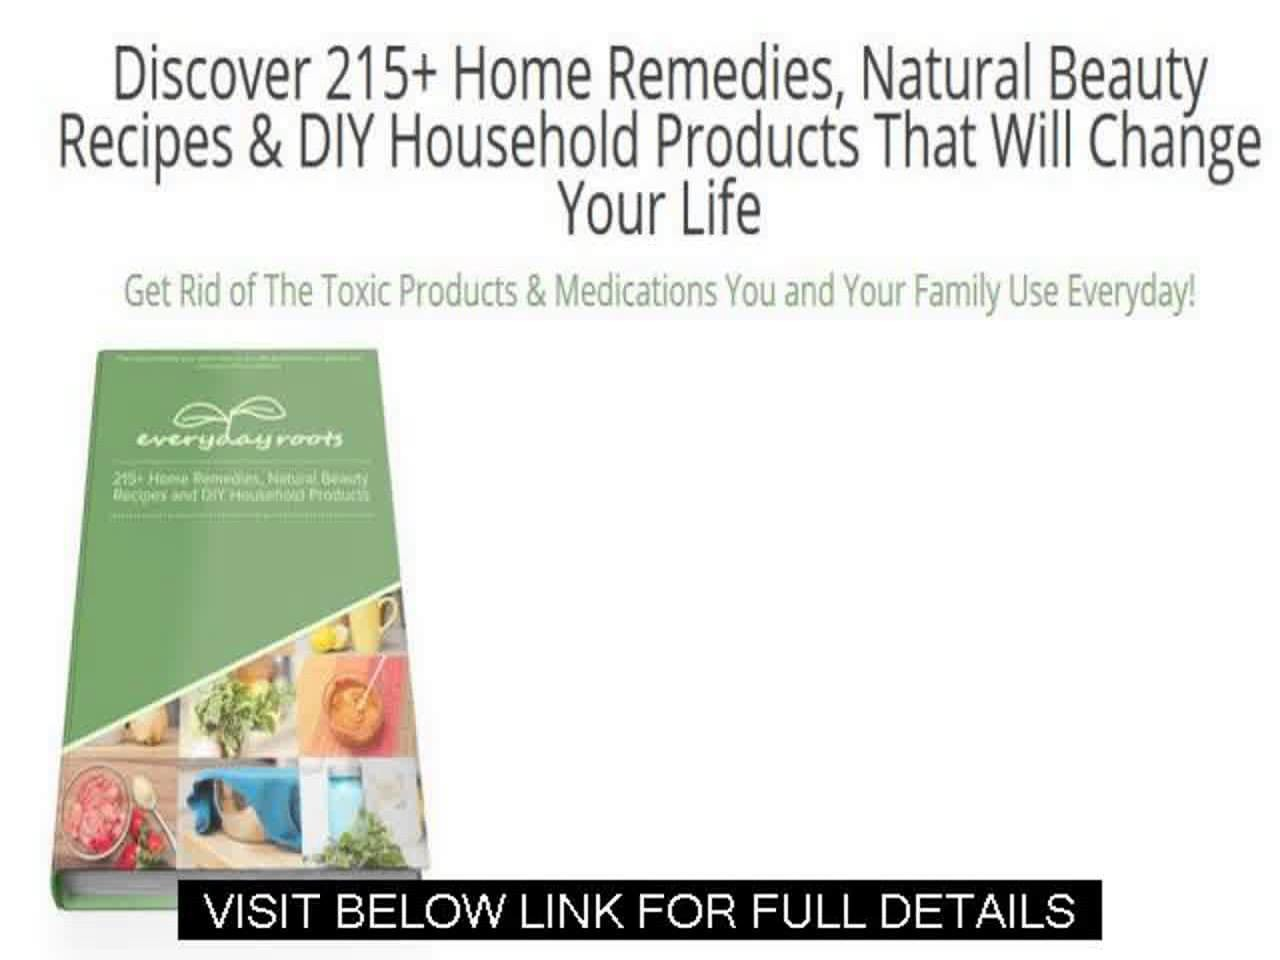 Homemade Beauty Recipes   Discover 215+ Home Remedies, Natural Beauty Recipes & Diy Household Produc